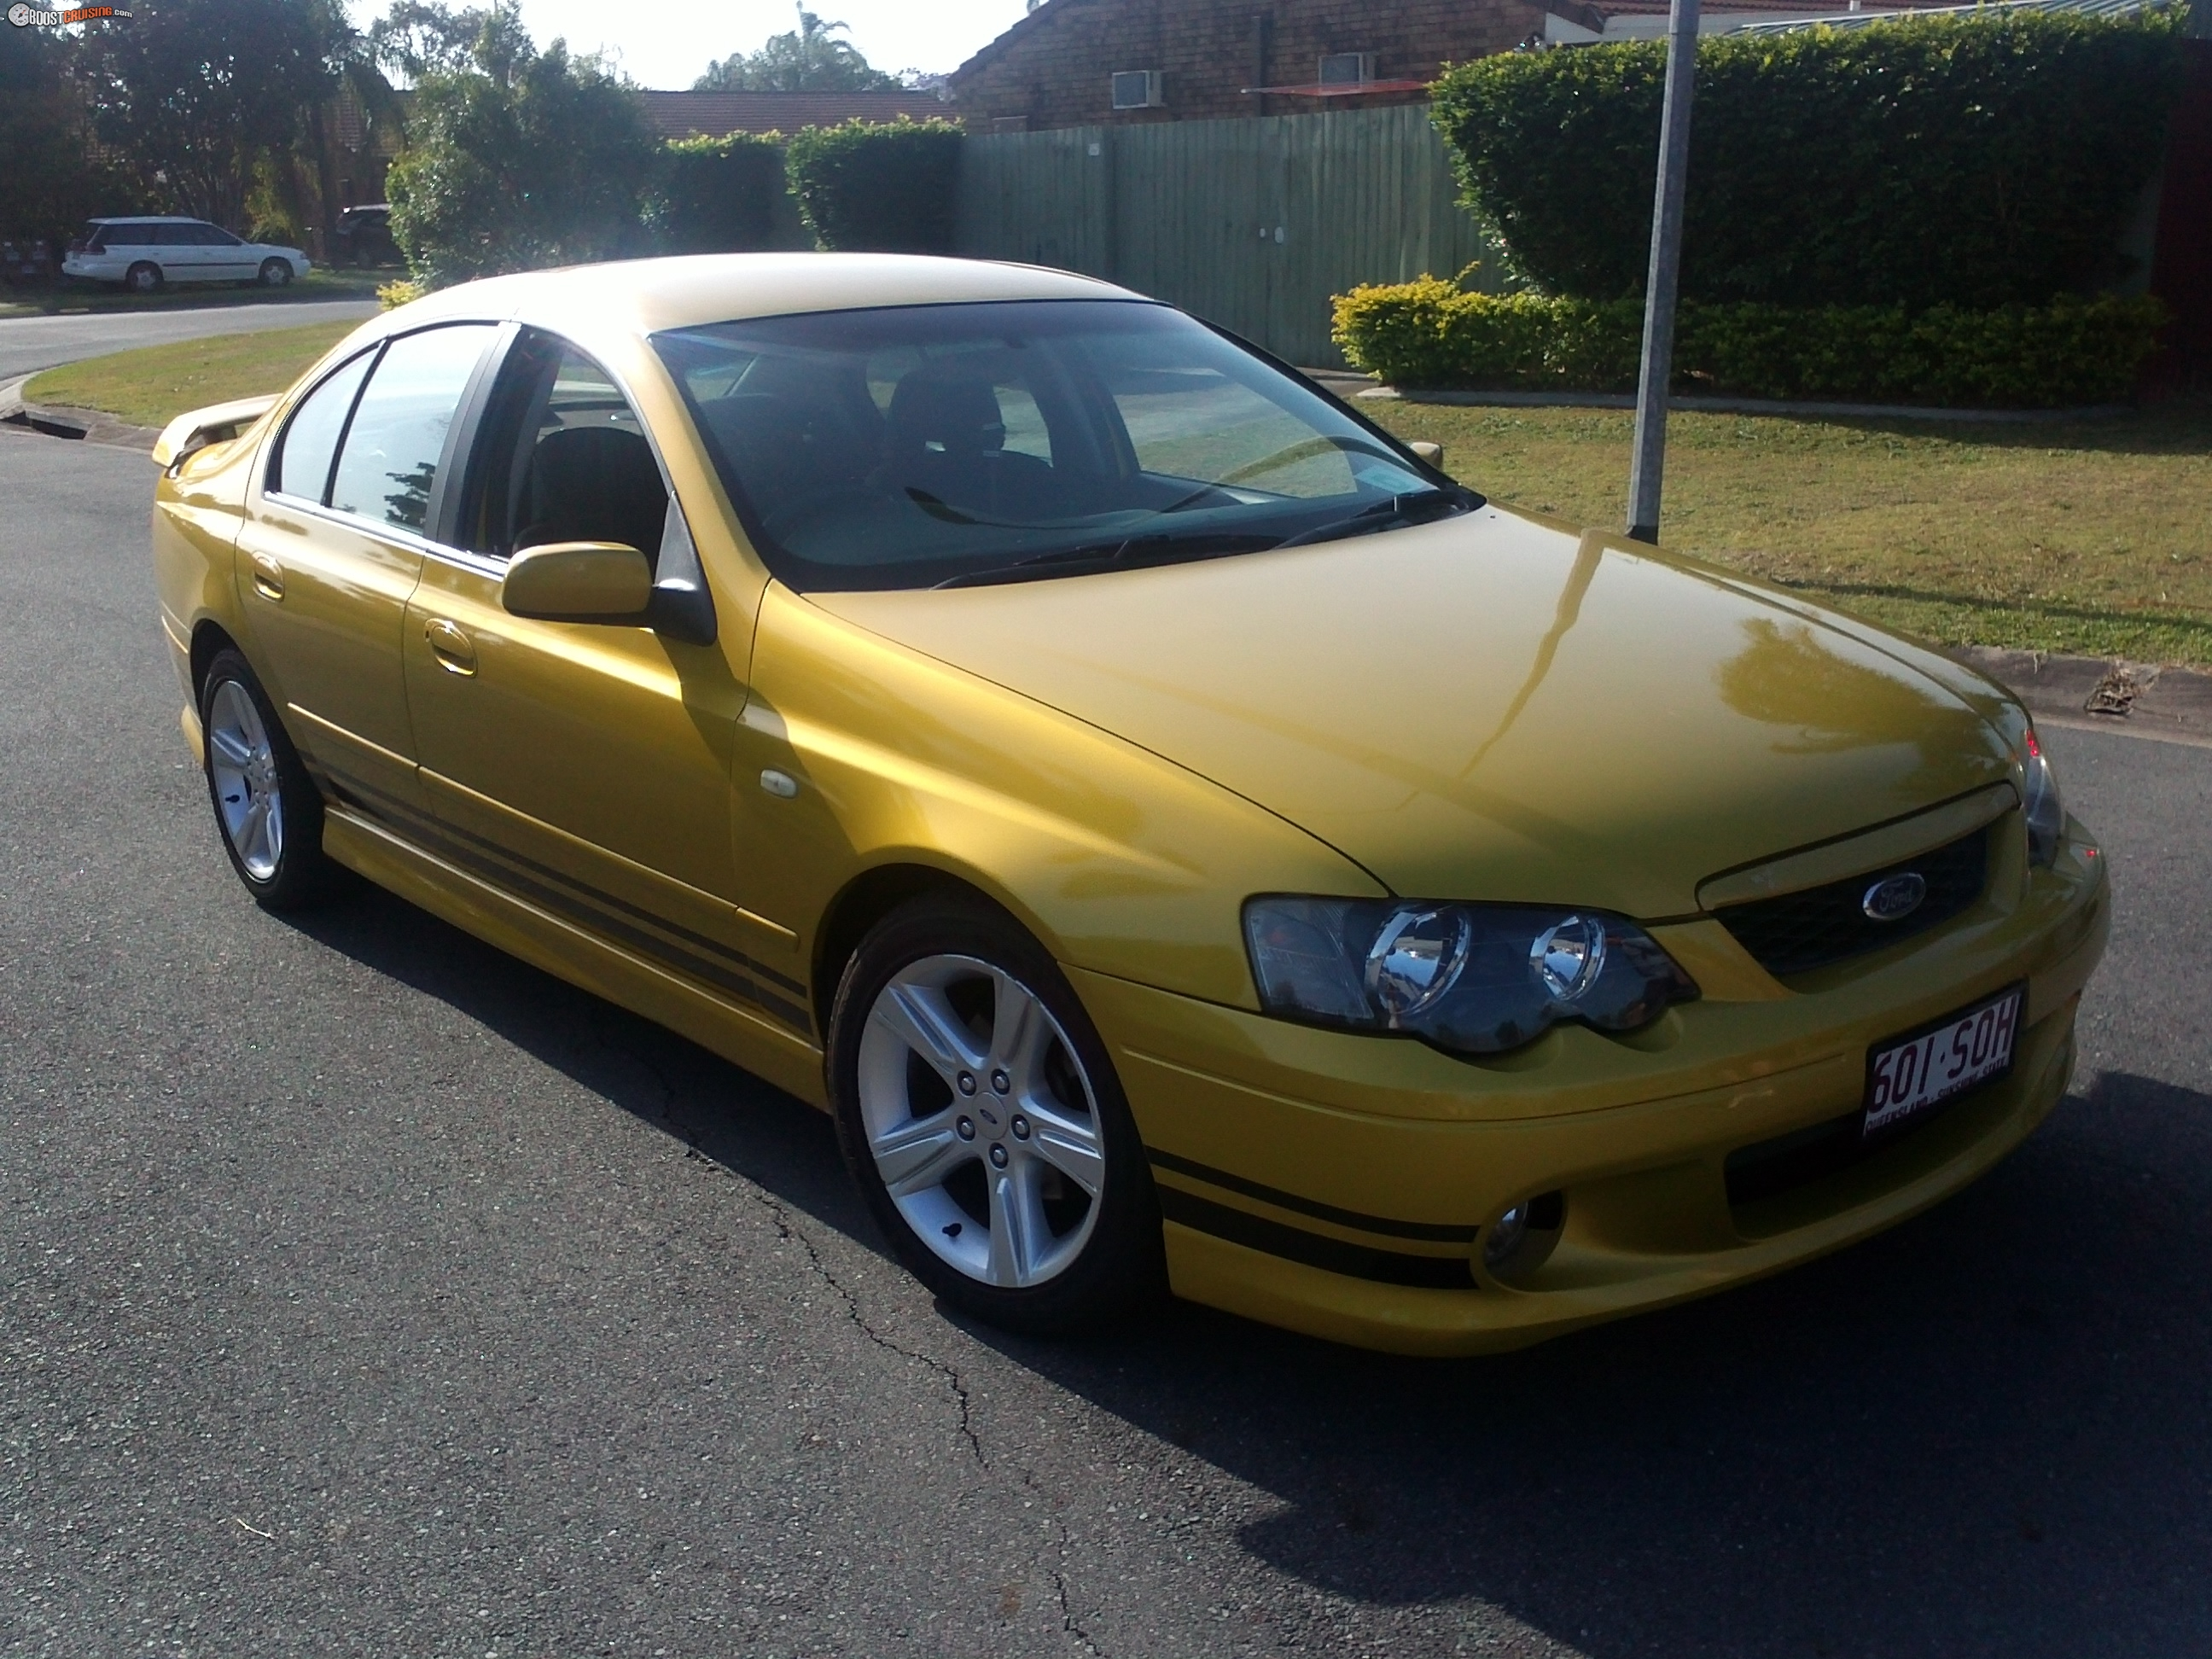 Wallpaper 02 together with 2143384 2003 Ford Falcon Xr6 Ba additionally File Ford Falcon XR 500 Wagon   Skippy  16211816252 also 460 Altbrkt Ewp together with 2453061 2012 Holden Colorado LTZ 4x4 RG For Sale. on ford xt falcon